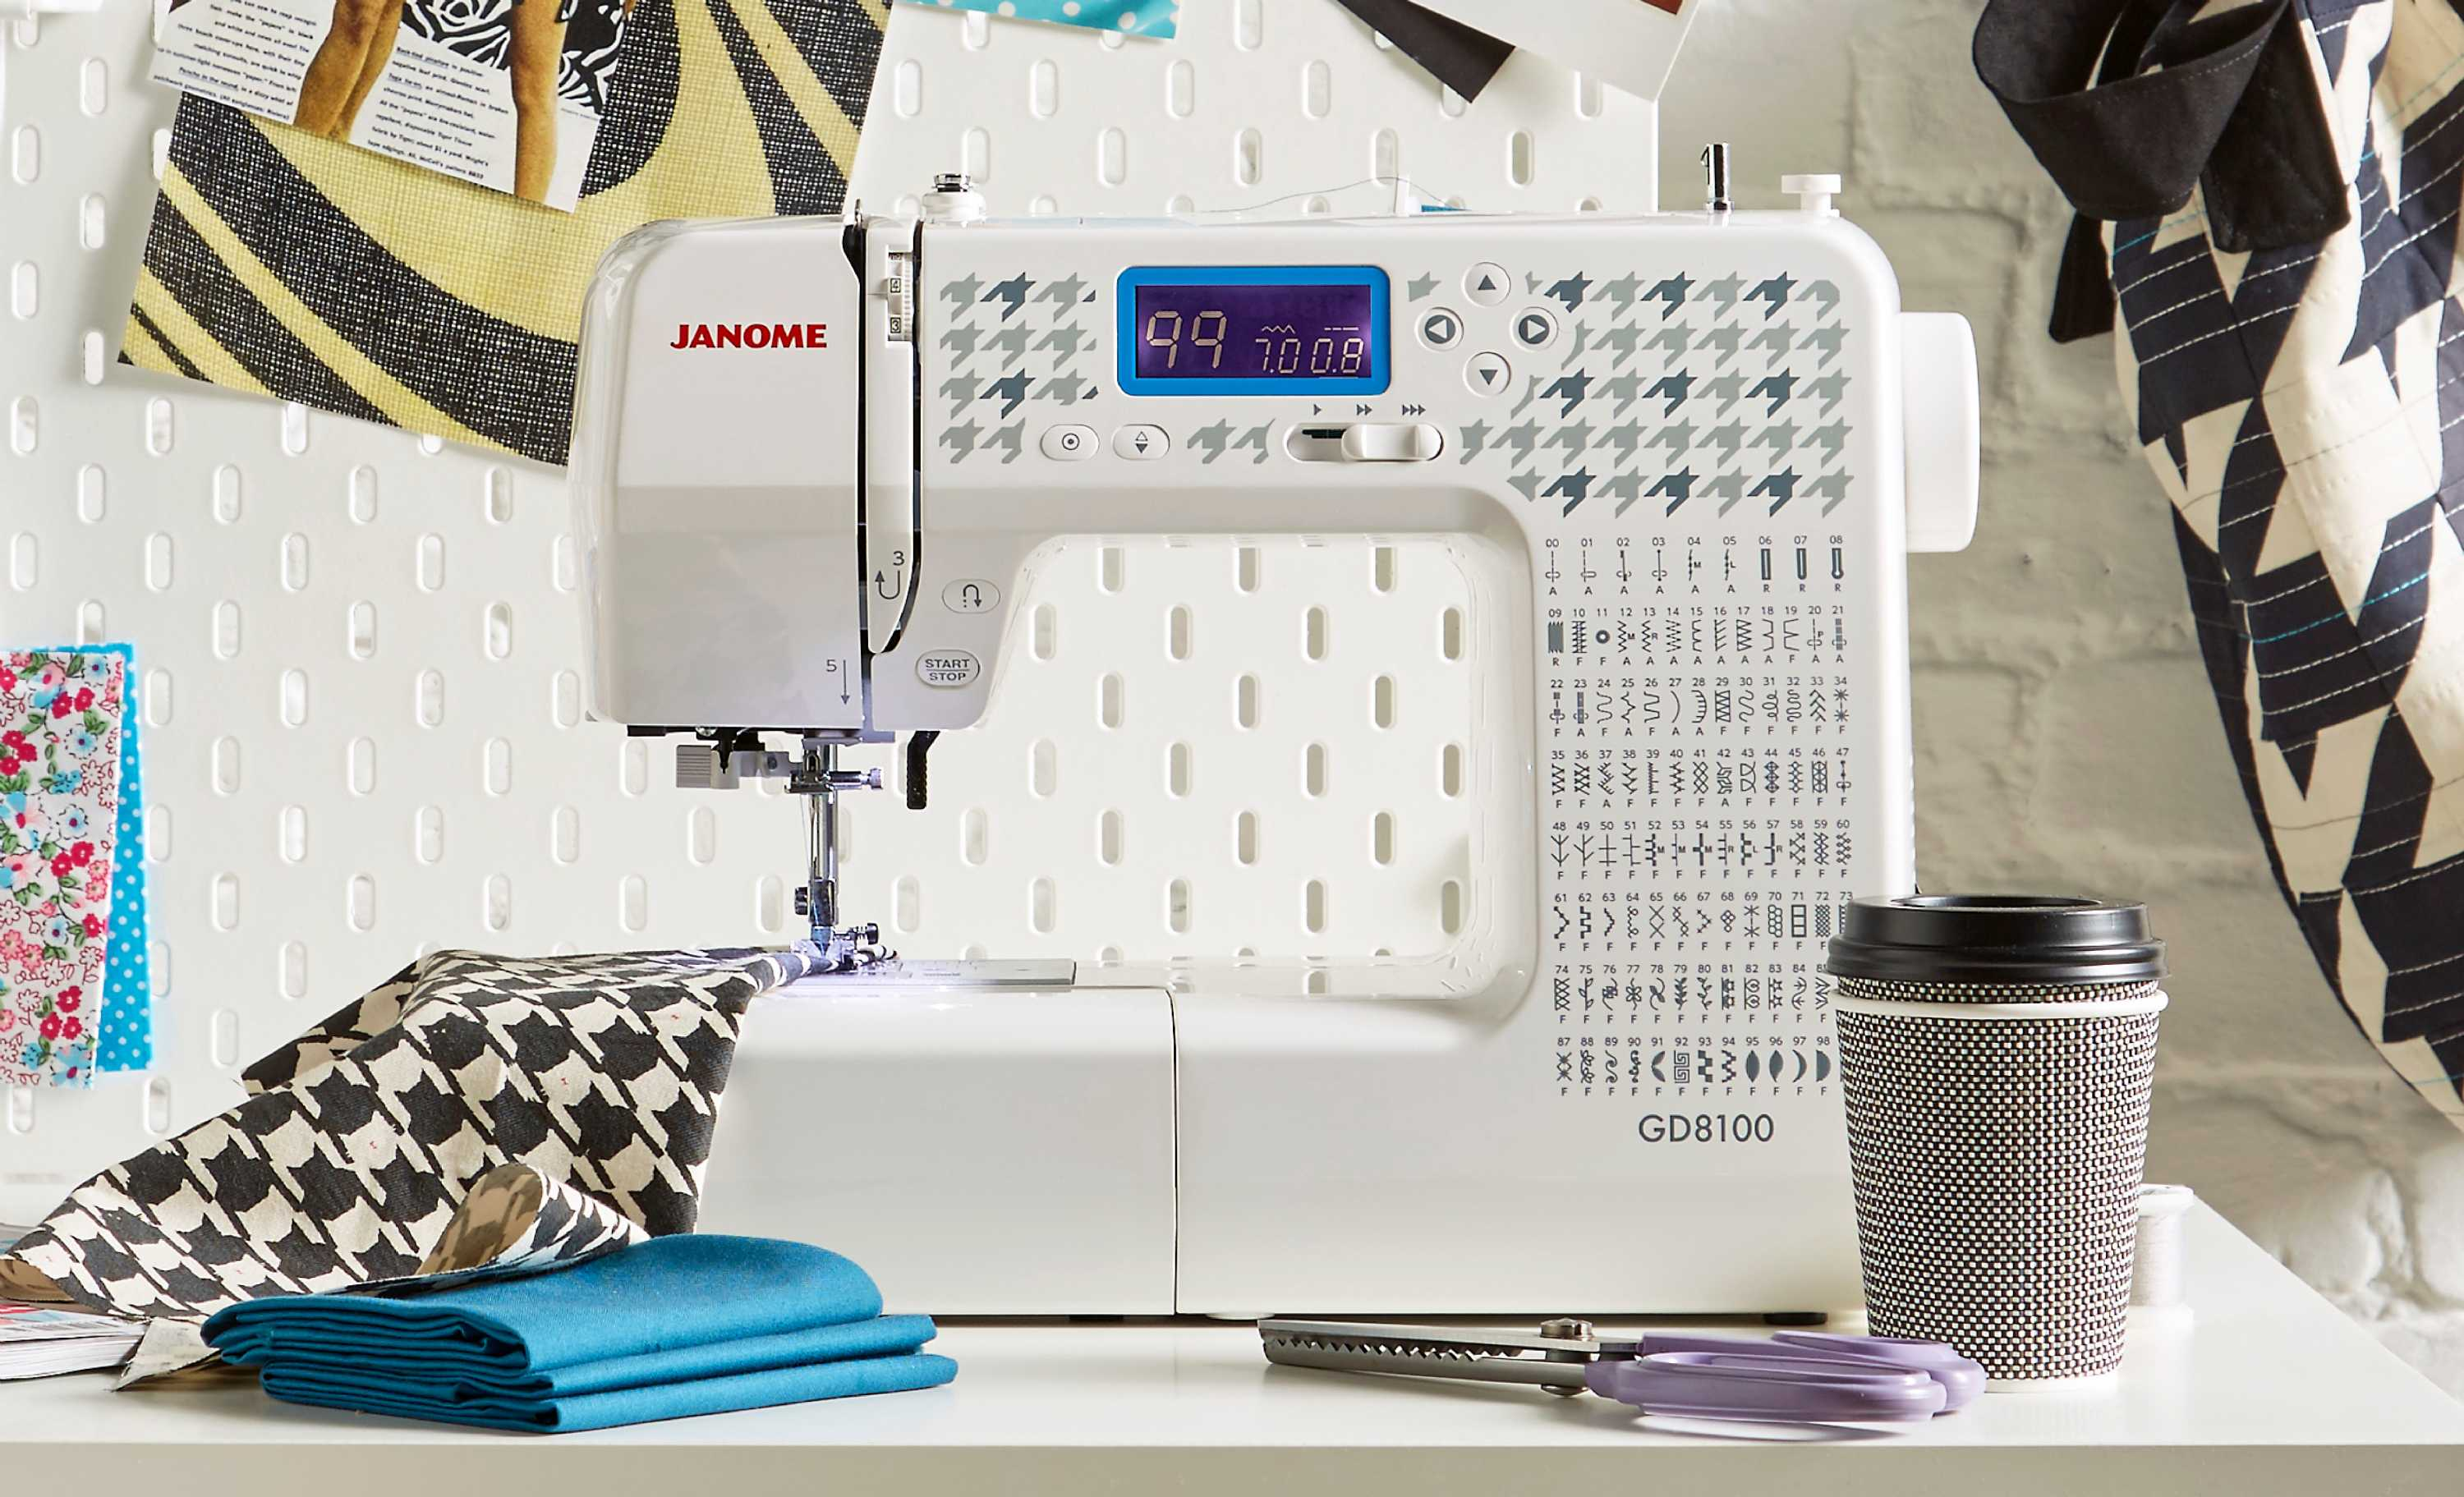 Janome - Seasonal Campaigns